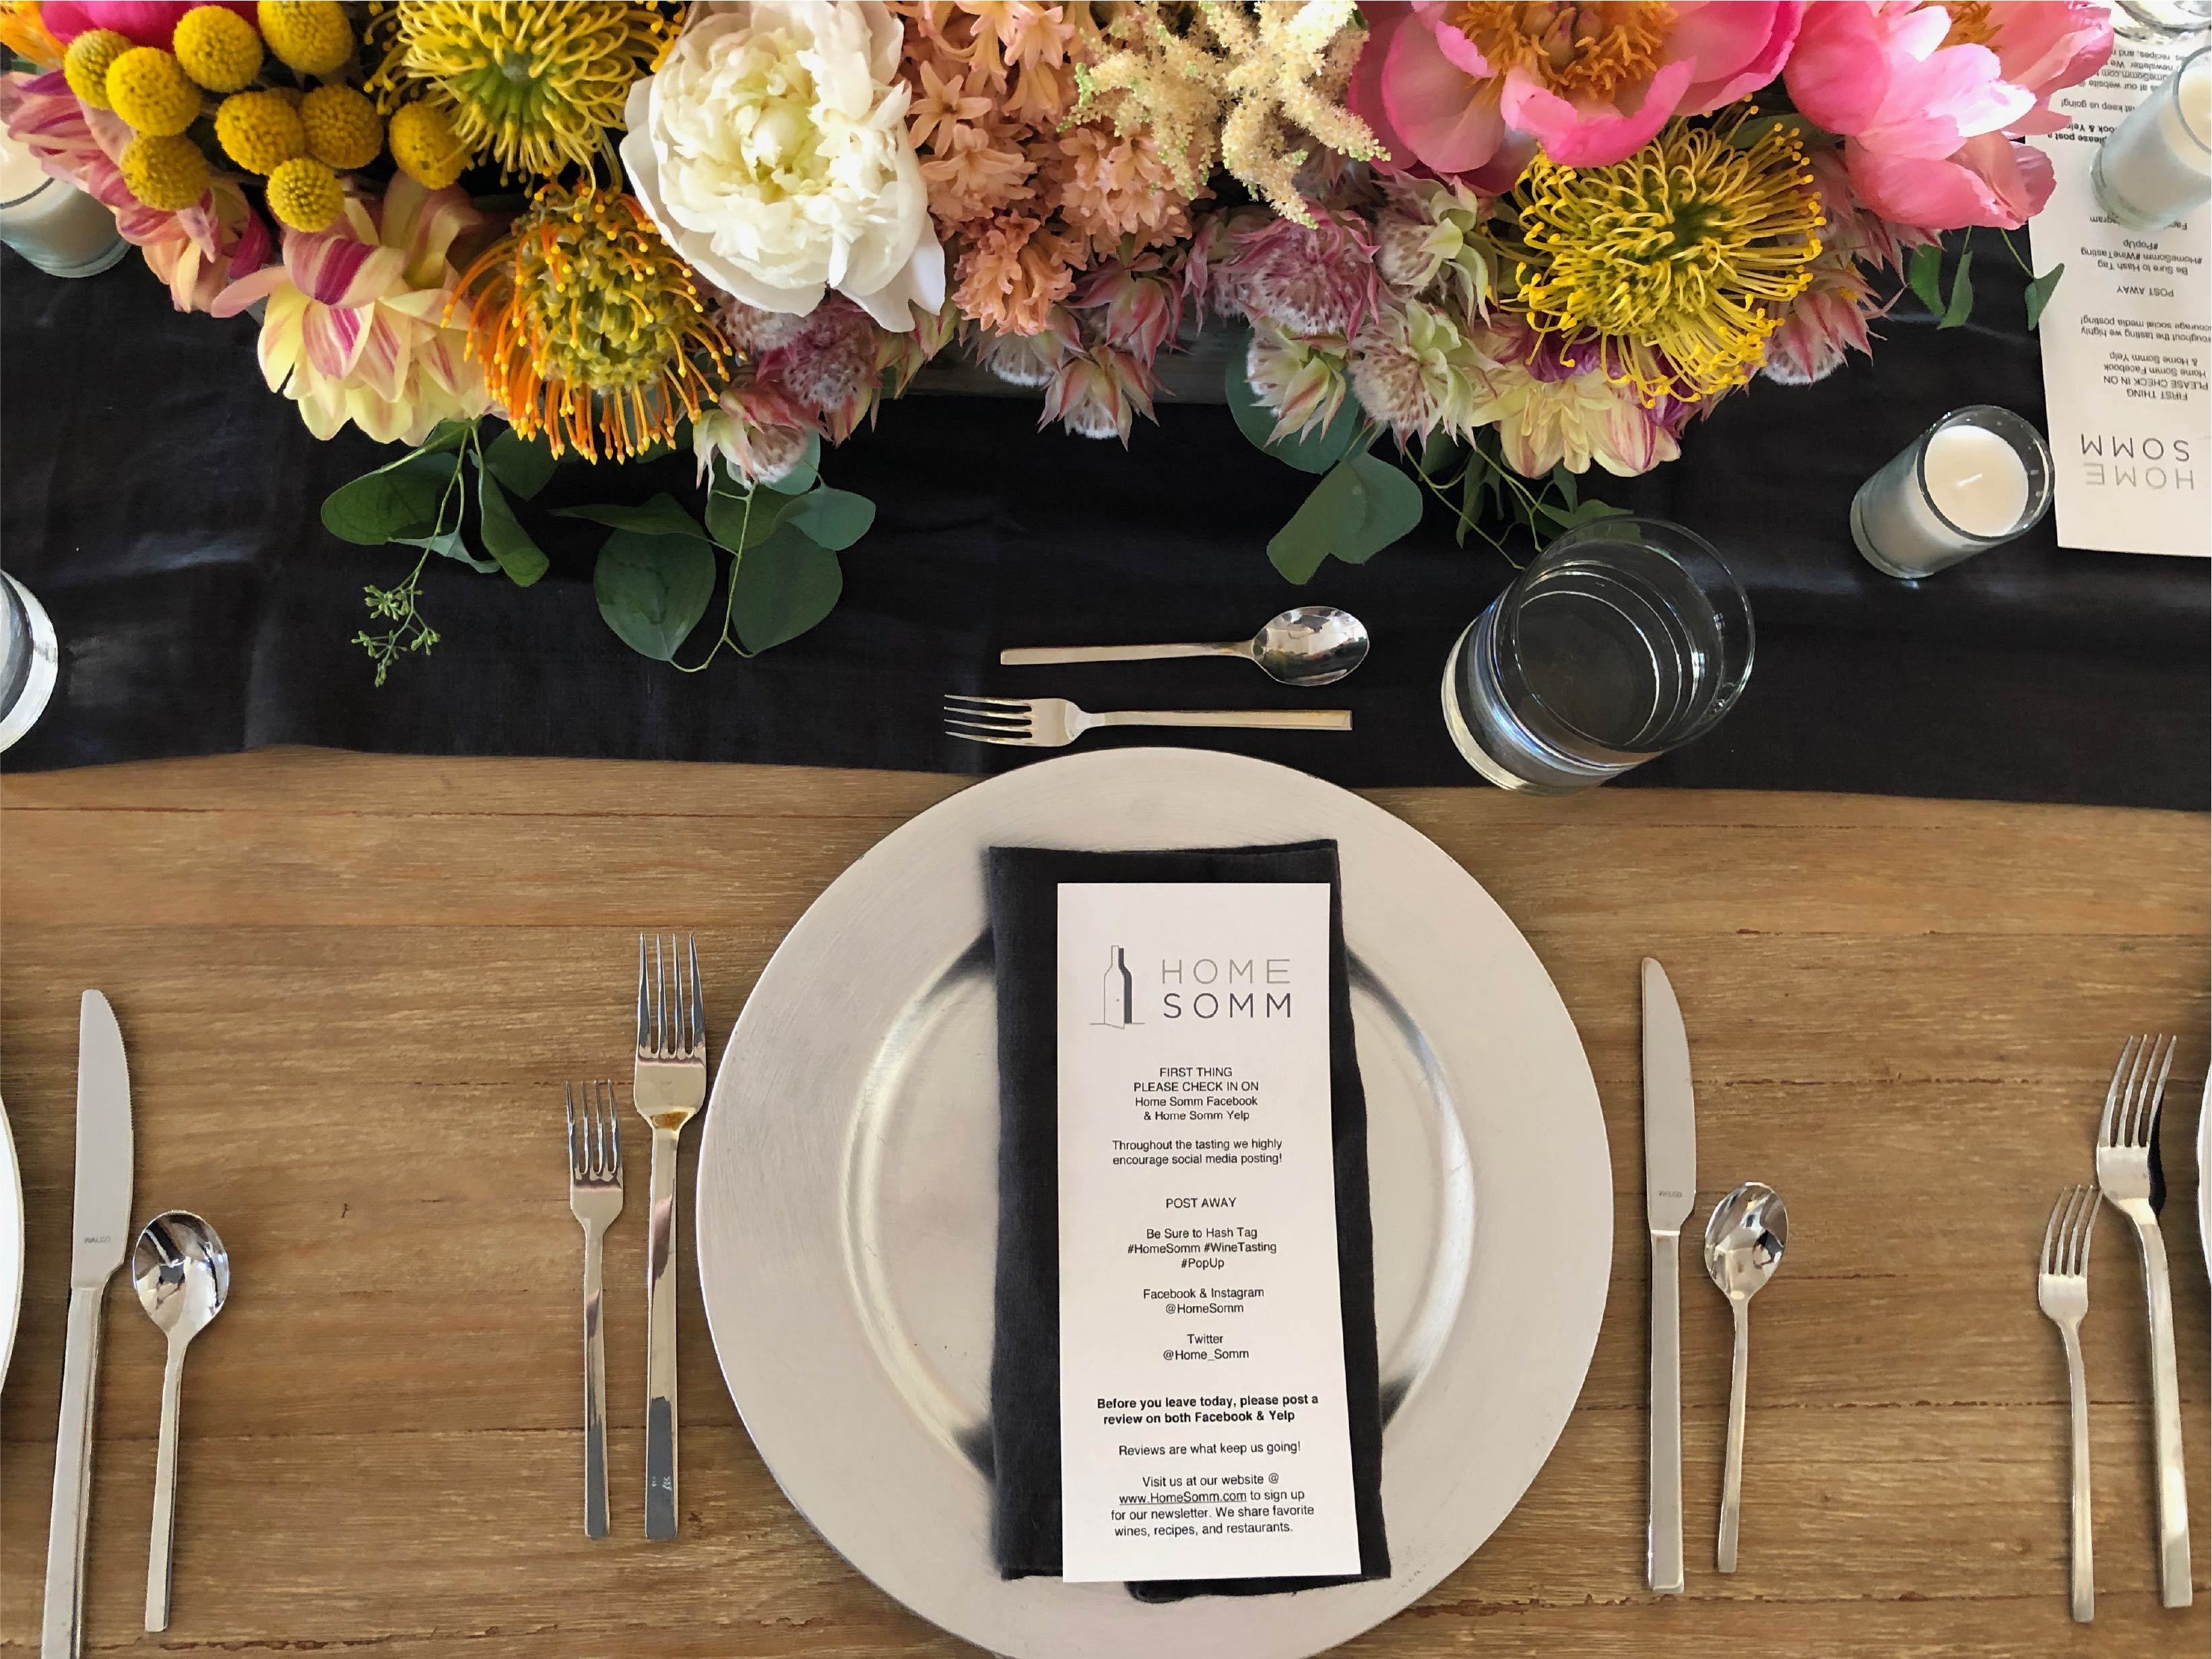 a picture of a plate and beautiful flowers and a menu from Home Somm